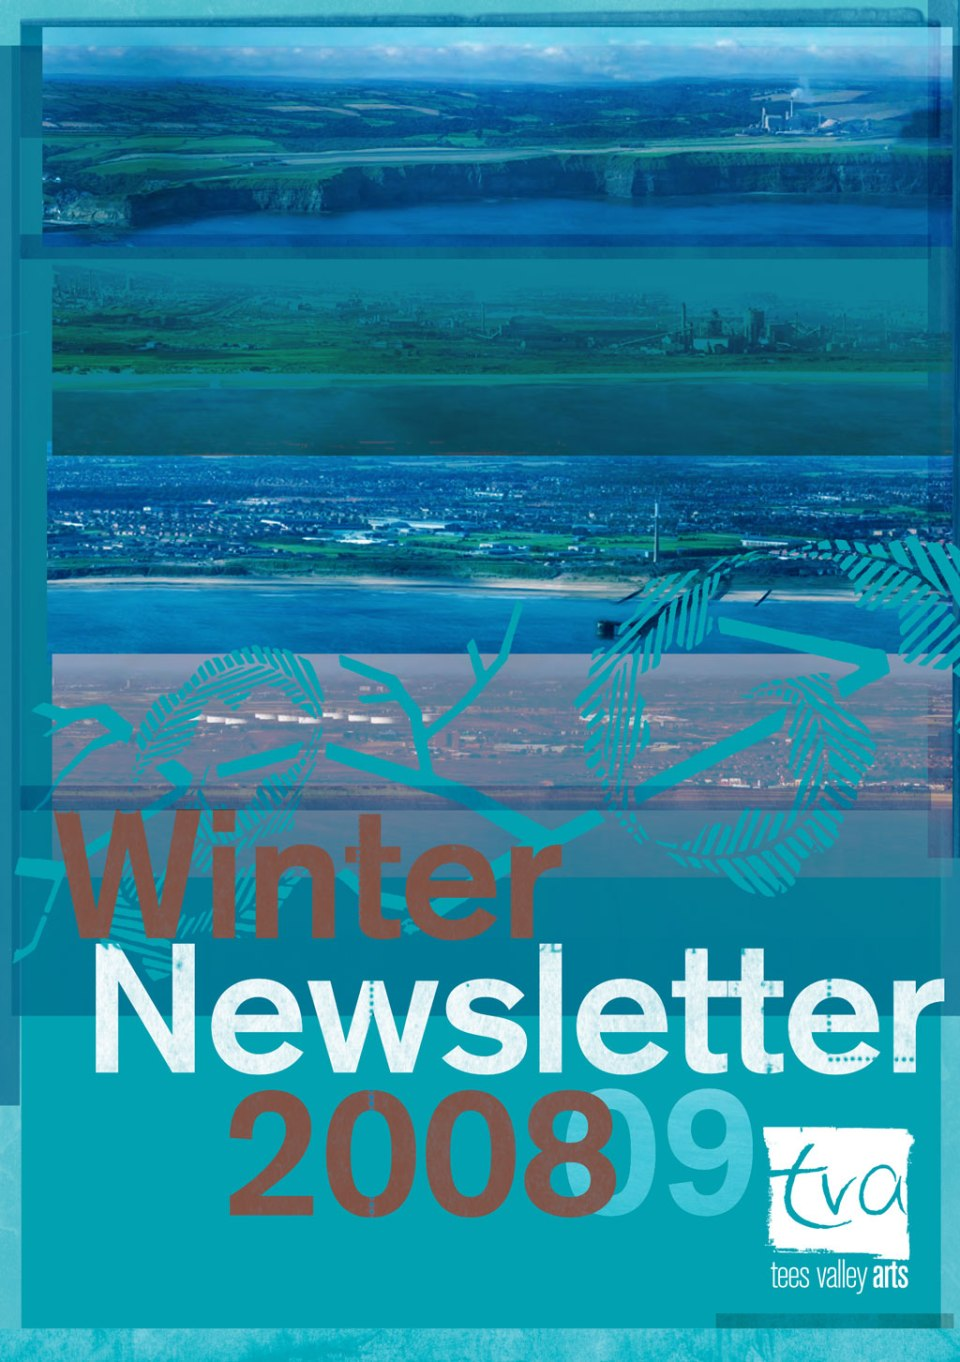 TVA Winter Newsletter 2008